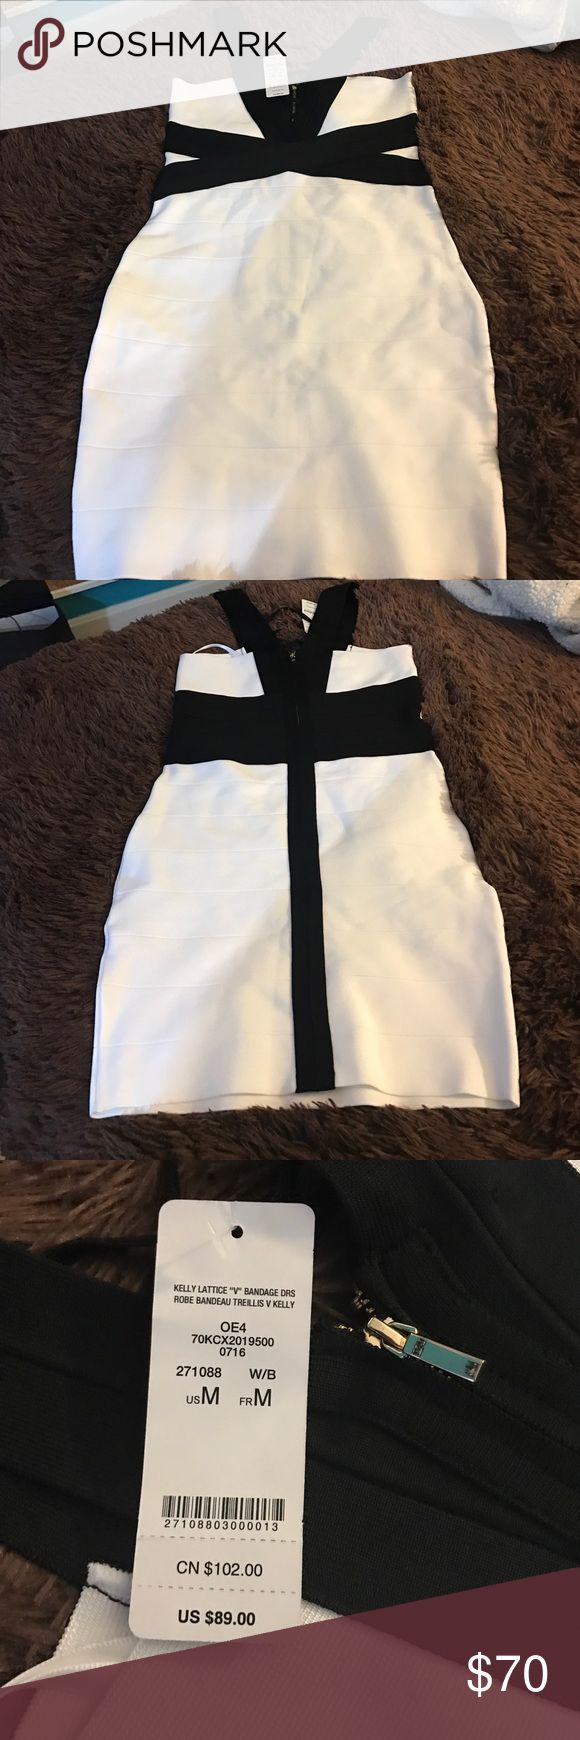 Black and White Bandage Dress Its Sexy! I have never worn it! bebe Dresses Mini